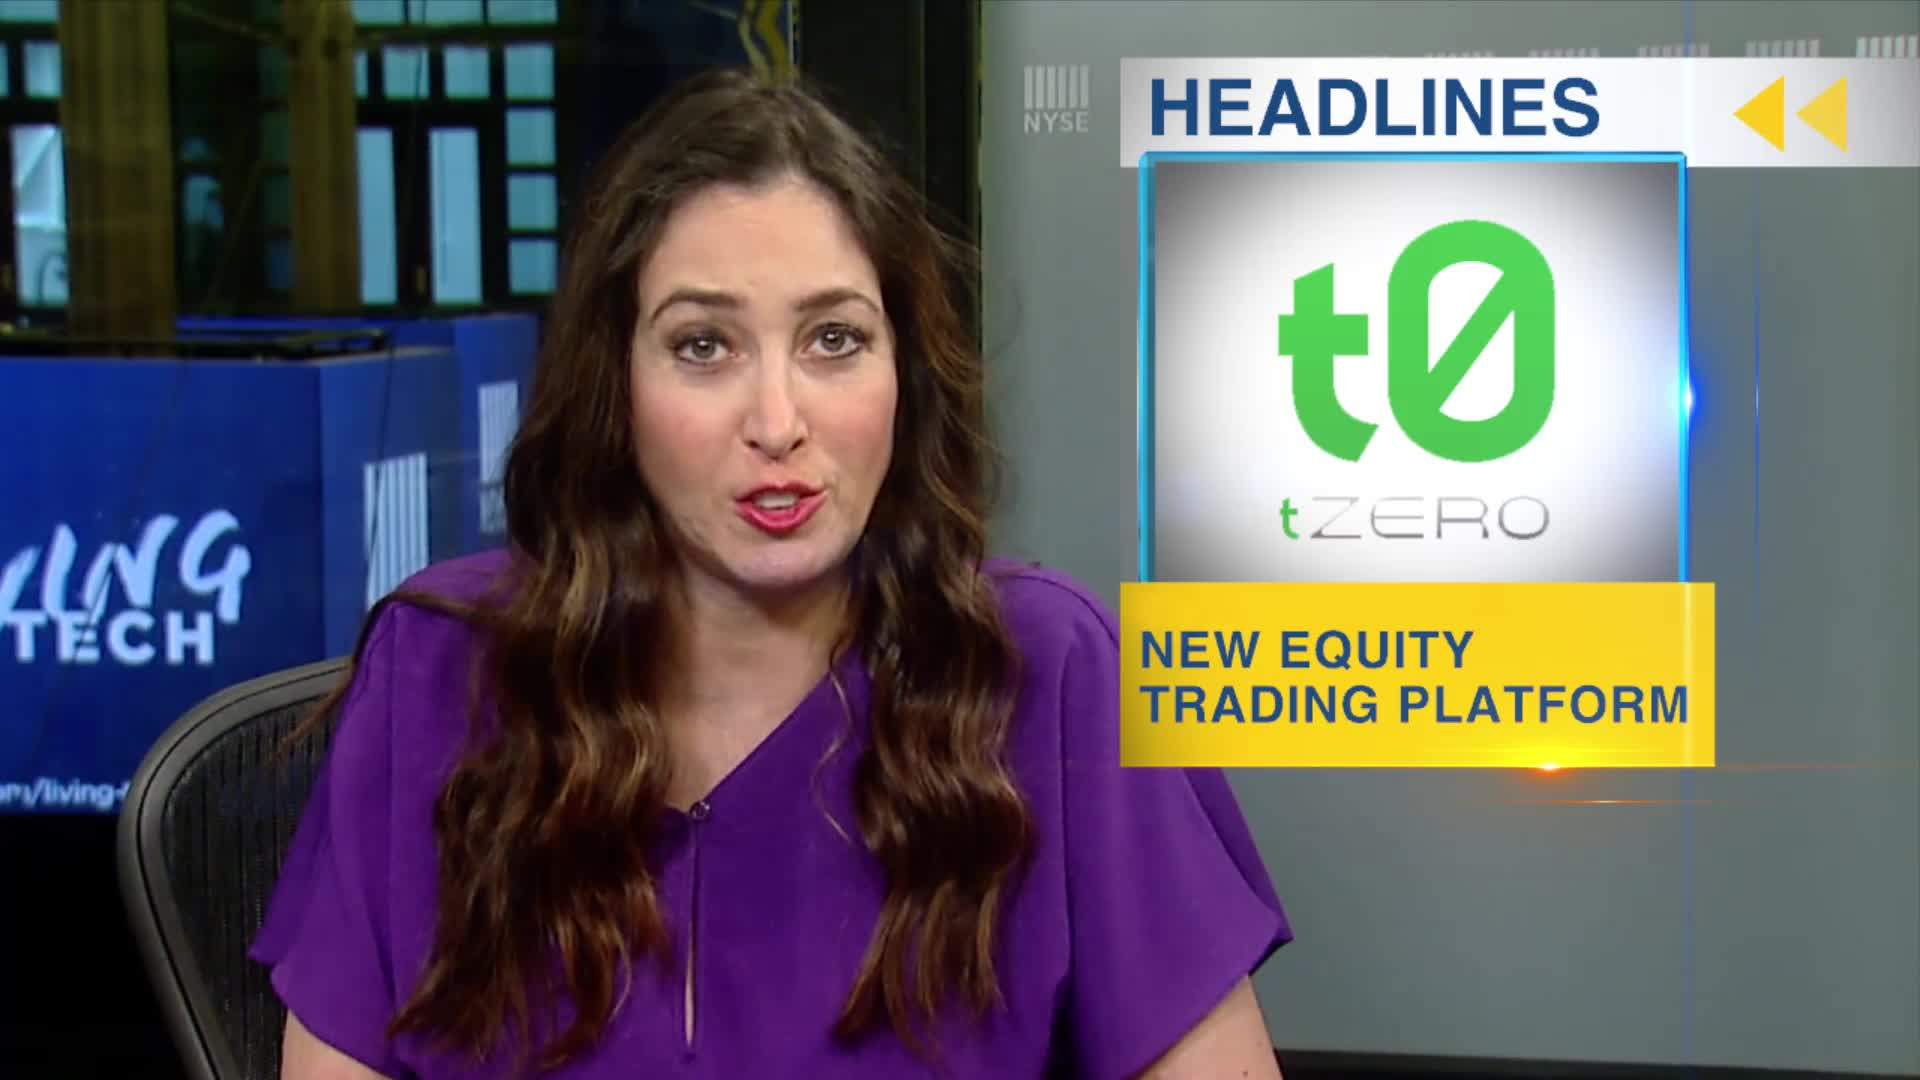 HEADLINES_LIBRA_STABLECOINS__NEW_EQUITY_TRADING_PLATFORM.mp4